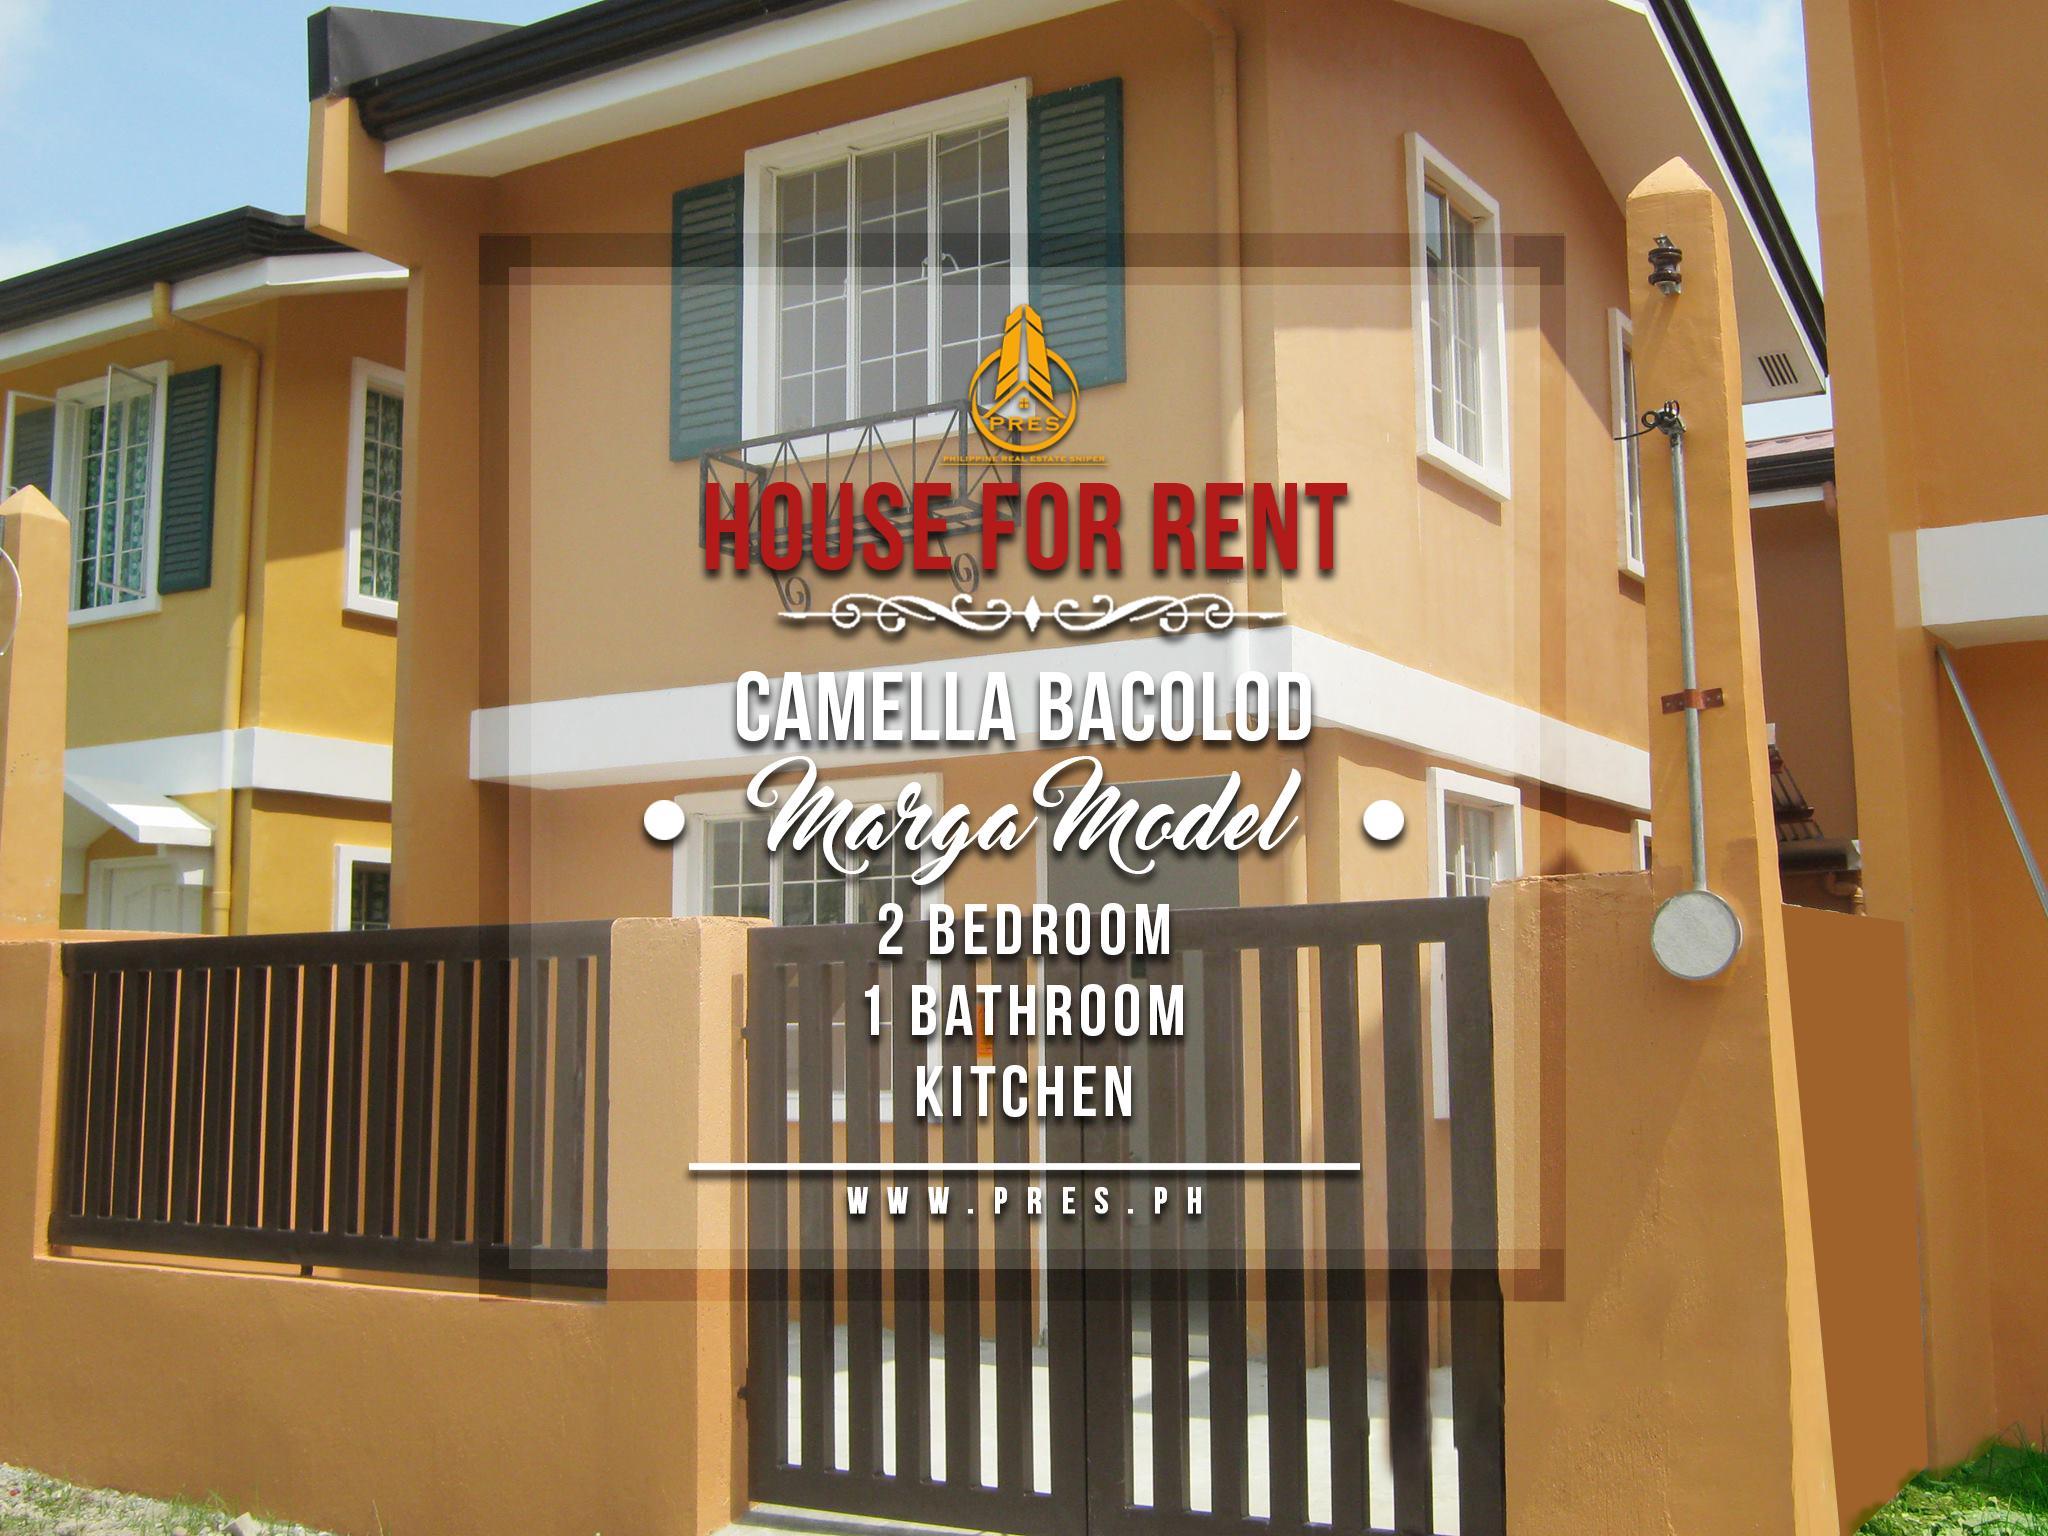 House For Rent in Camella Bacolod PRES